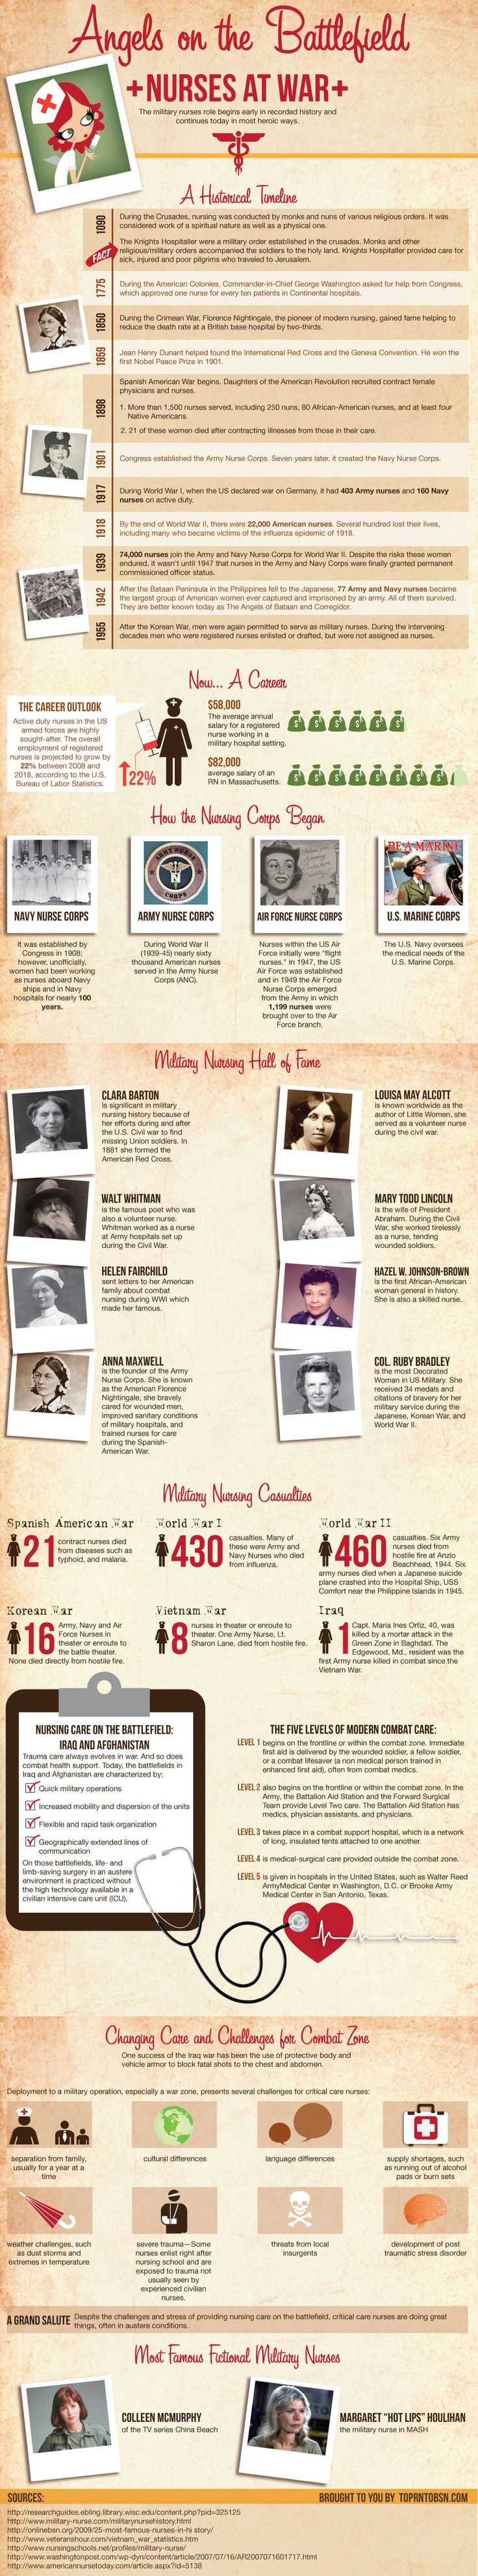 best images about nursing vintage nurse flight infographic angels on the battlefield nurses at war nursing essaycareer